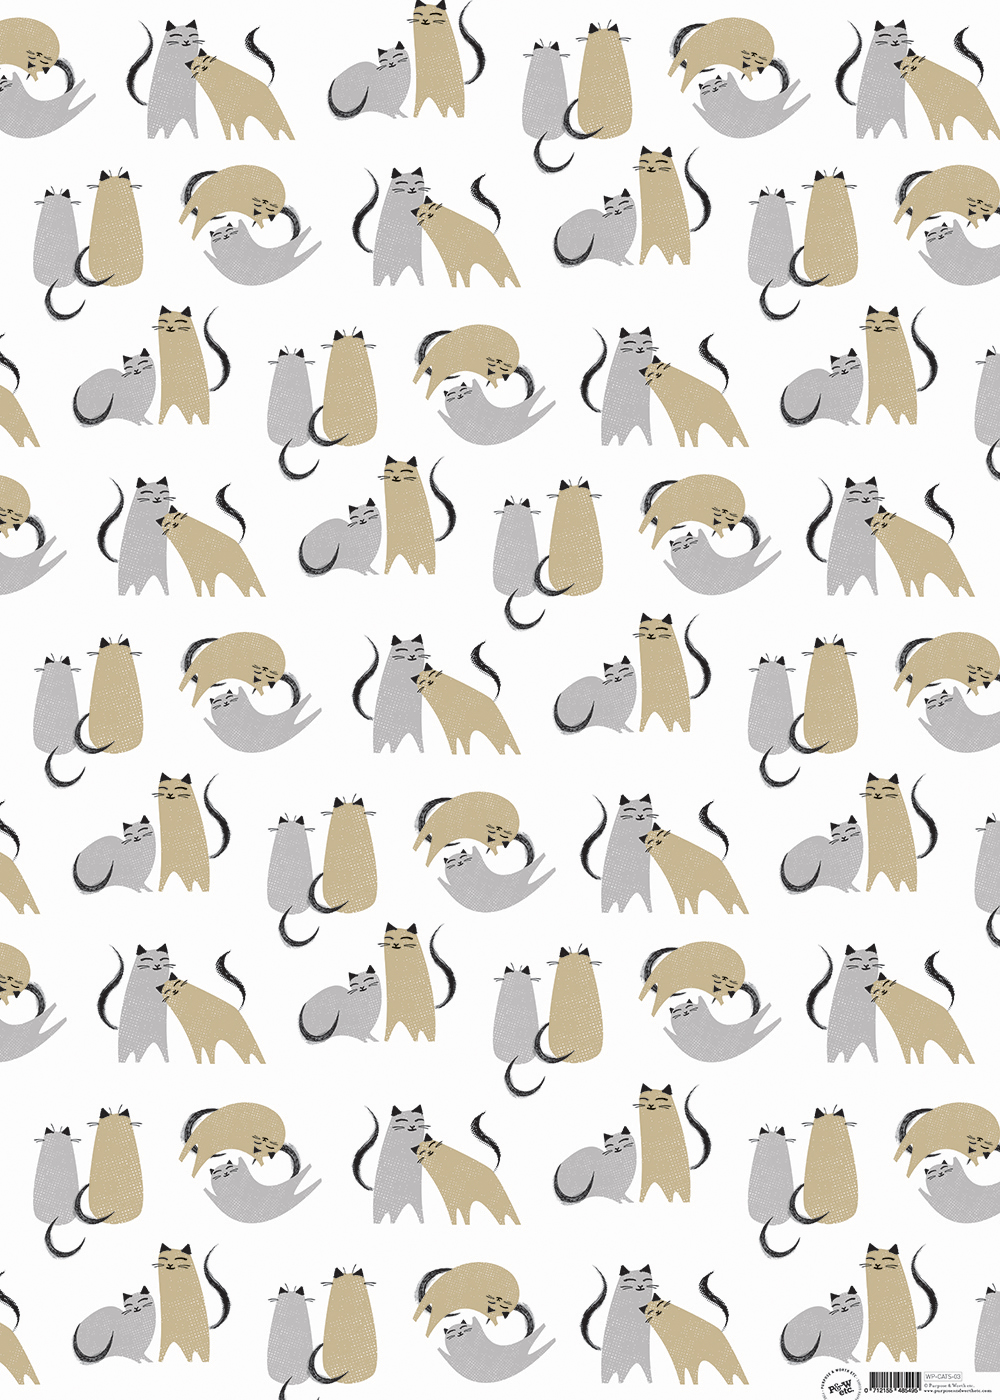 Kitty-corner Love cats wrapping paper: WP_KC_03, matching cards available